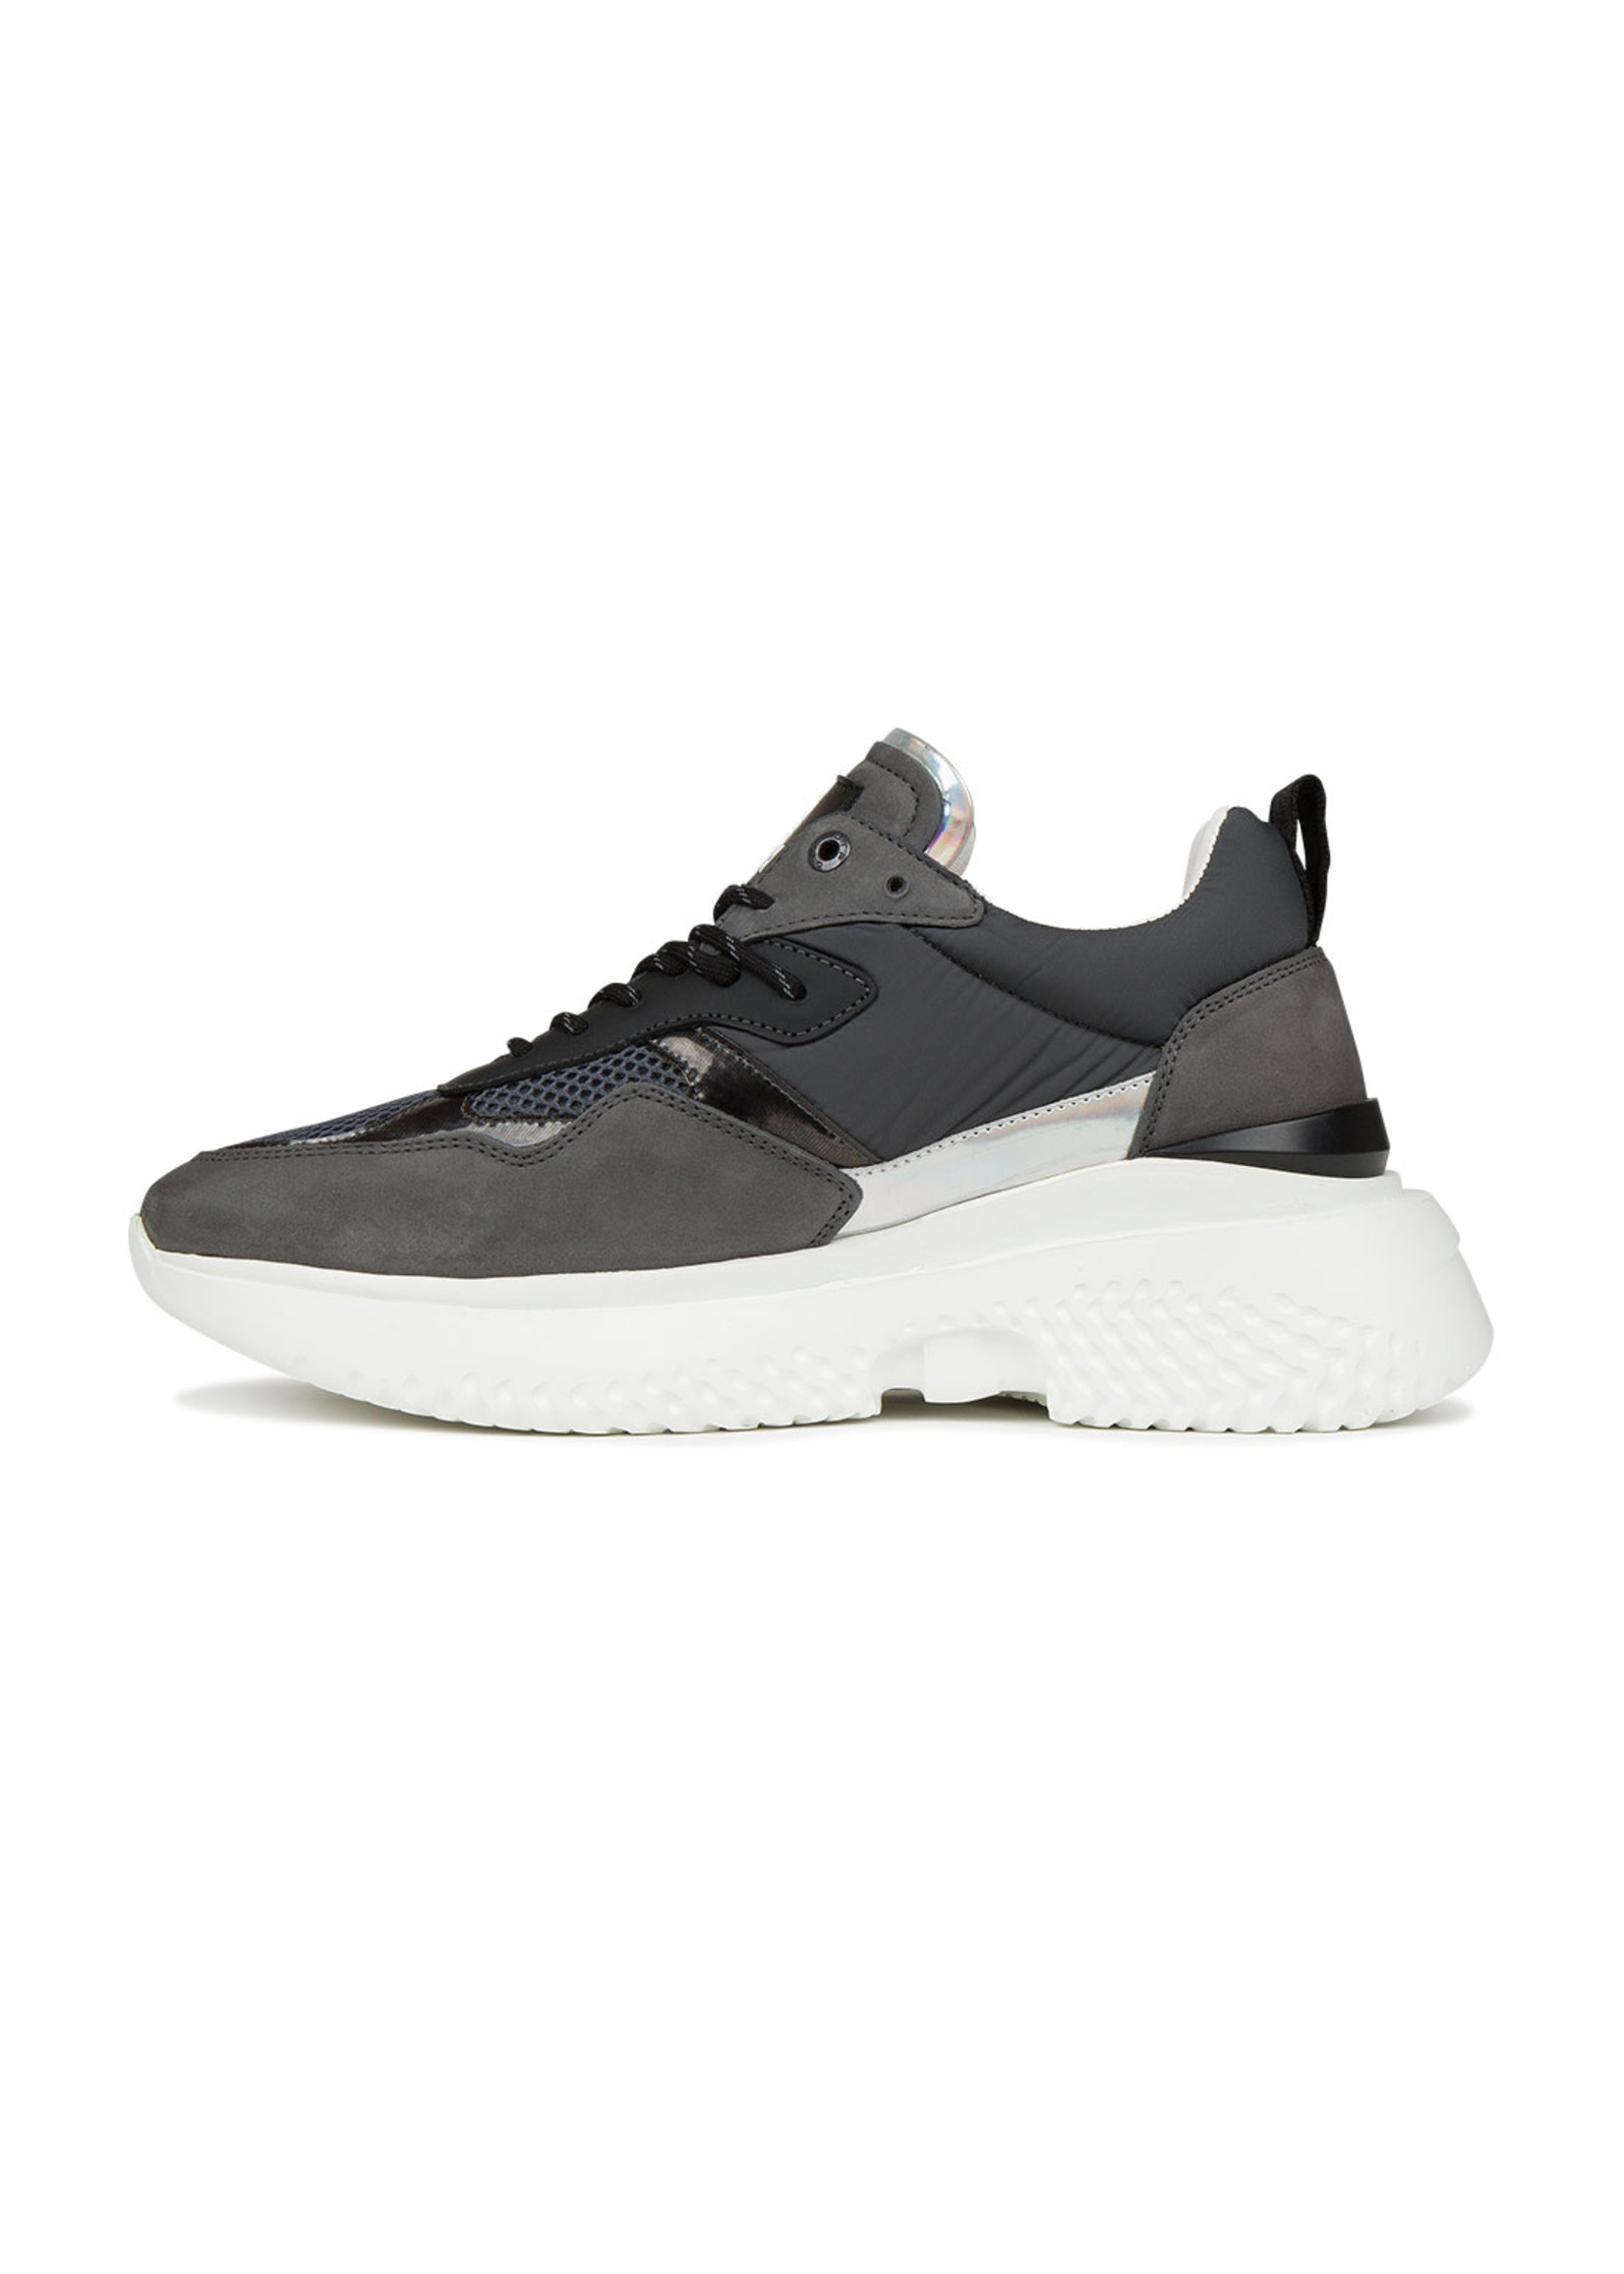 OFF THE PITCH OFF THE PITCH | Crunch Runner 2.0 - Grey